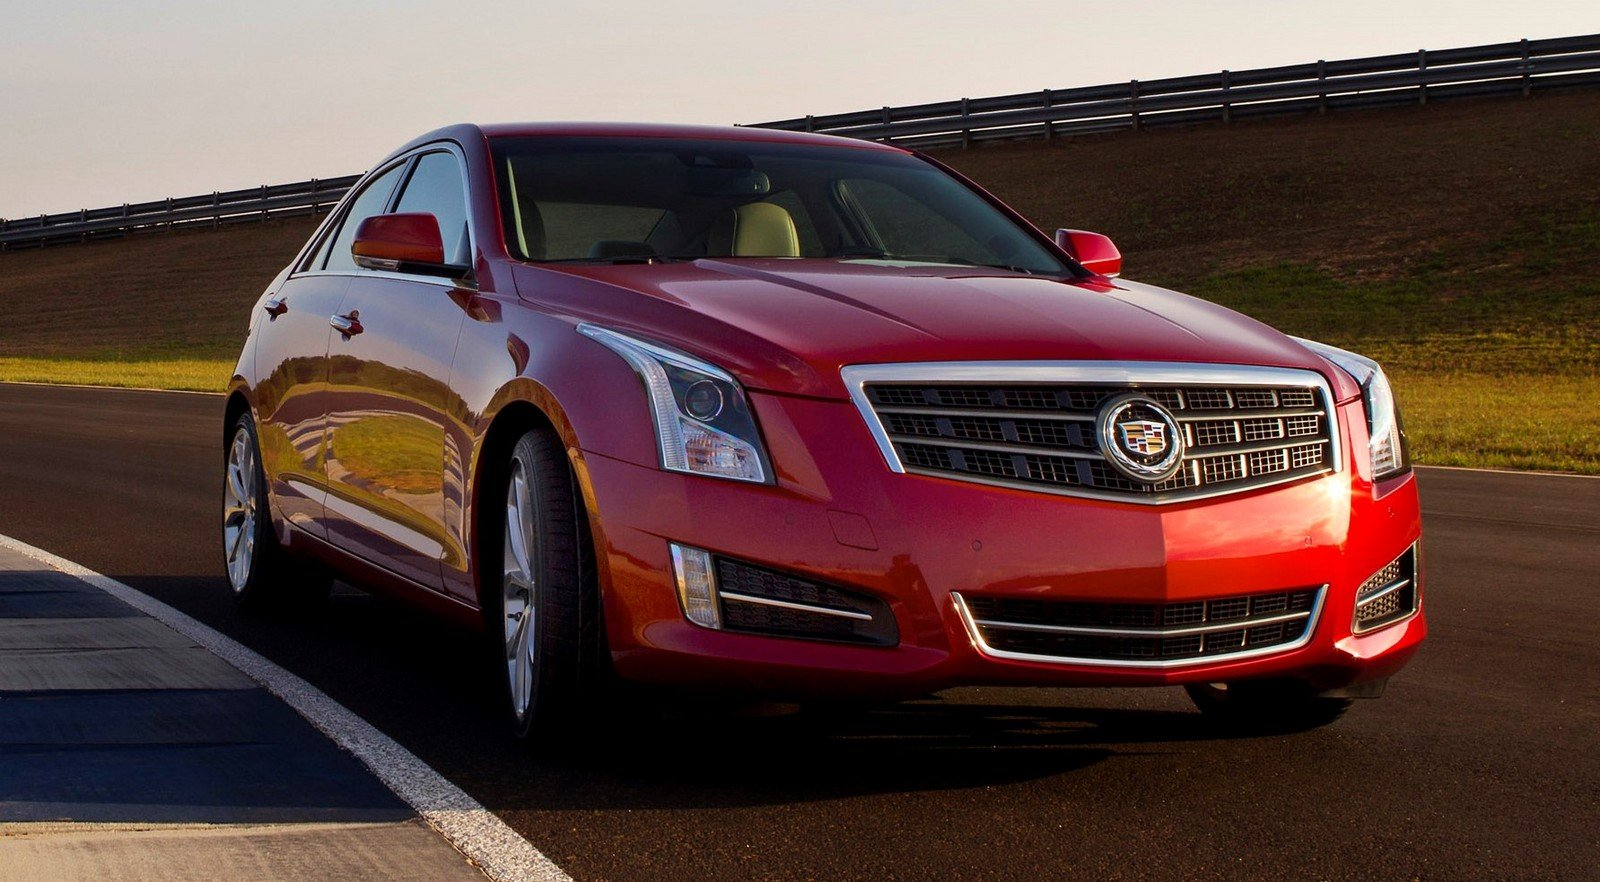 2014 cadillac ats picture 514218 car review top speed. Cars Review. Best American Auto & Cars Review